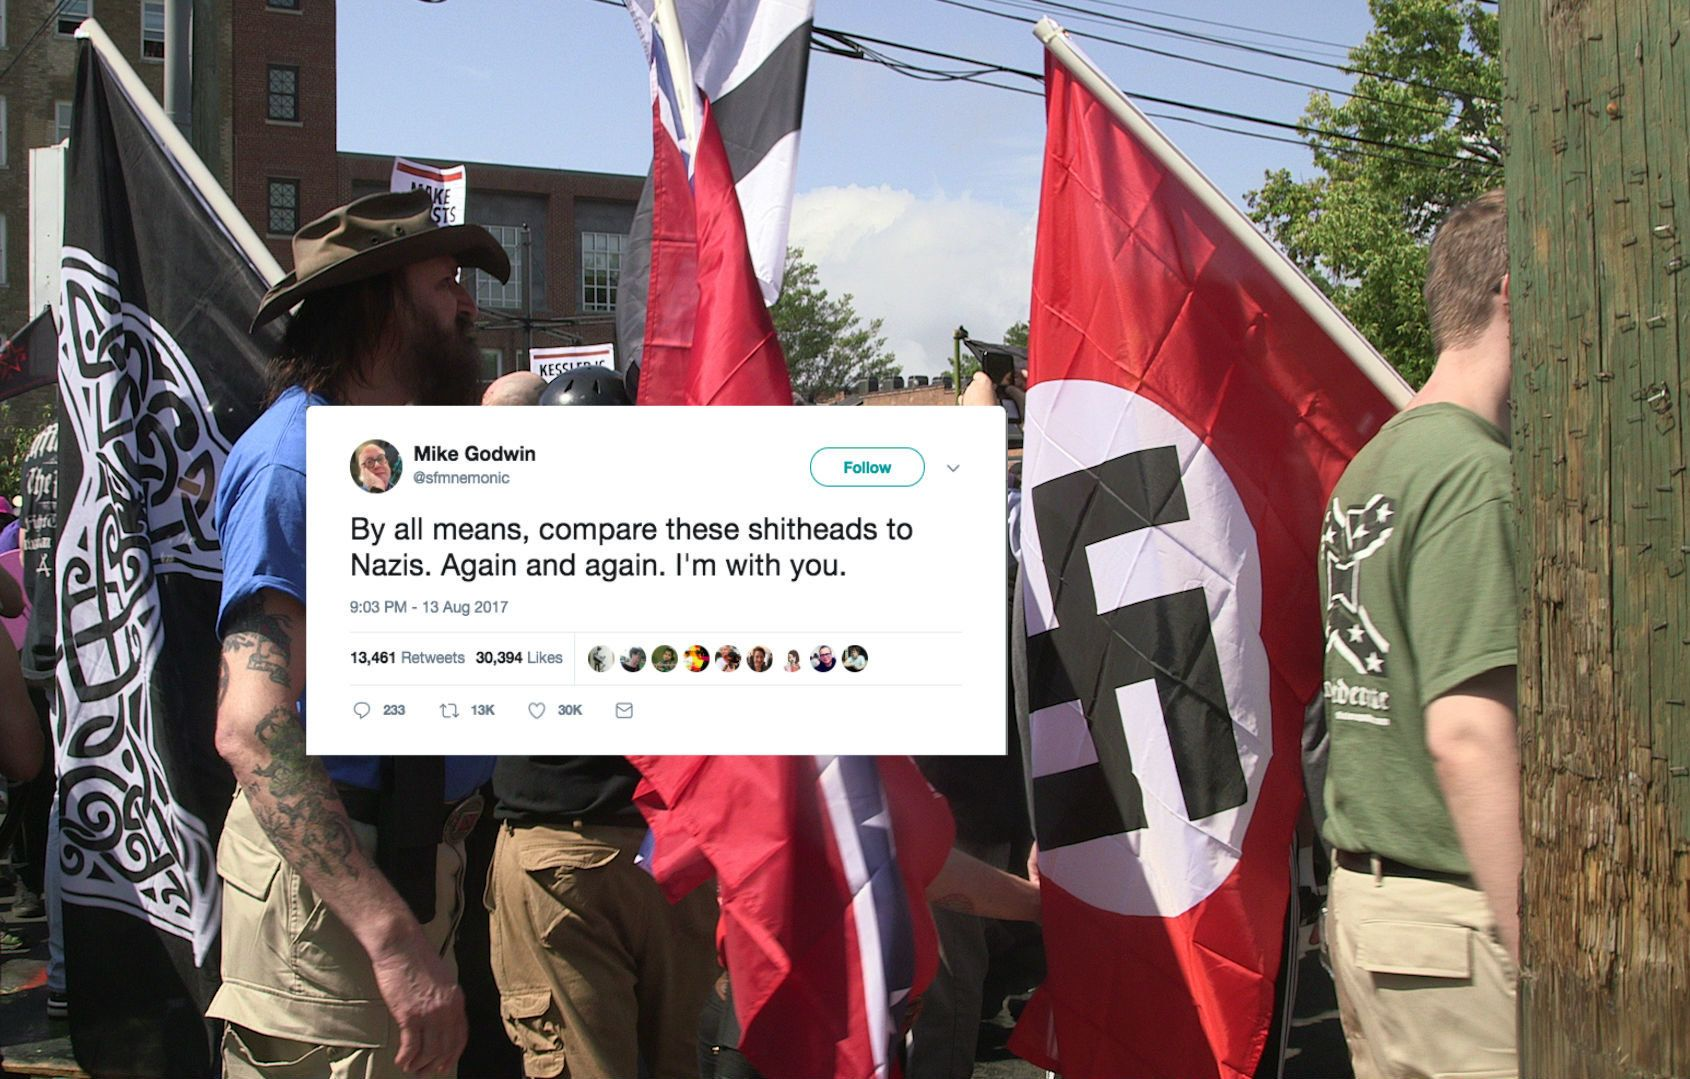 Demonstrators carry confederate and Nazi flags during the Unite the Right free speech rally at Emancipation Park in Charlottesville Virginia USA on August 12 2017 Photo by Emily Molli/NurPhoto via Getty Images